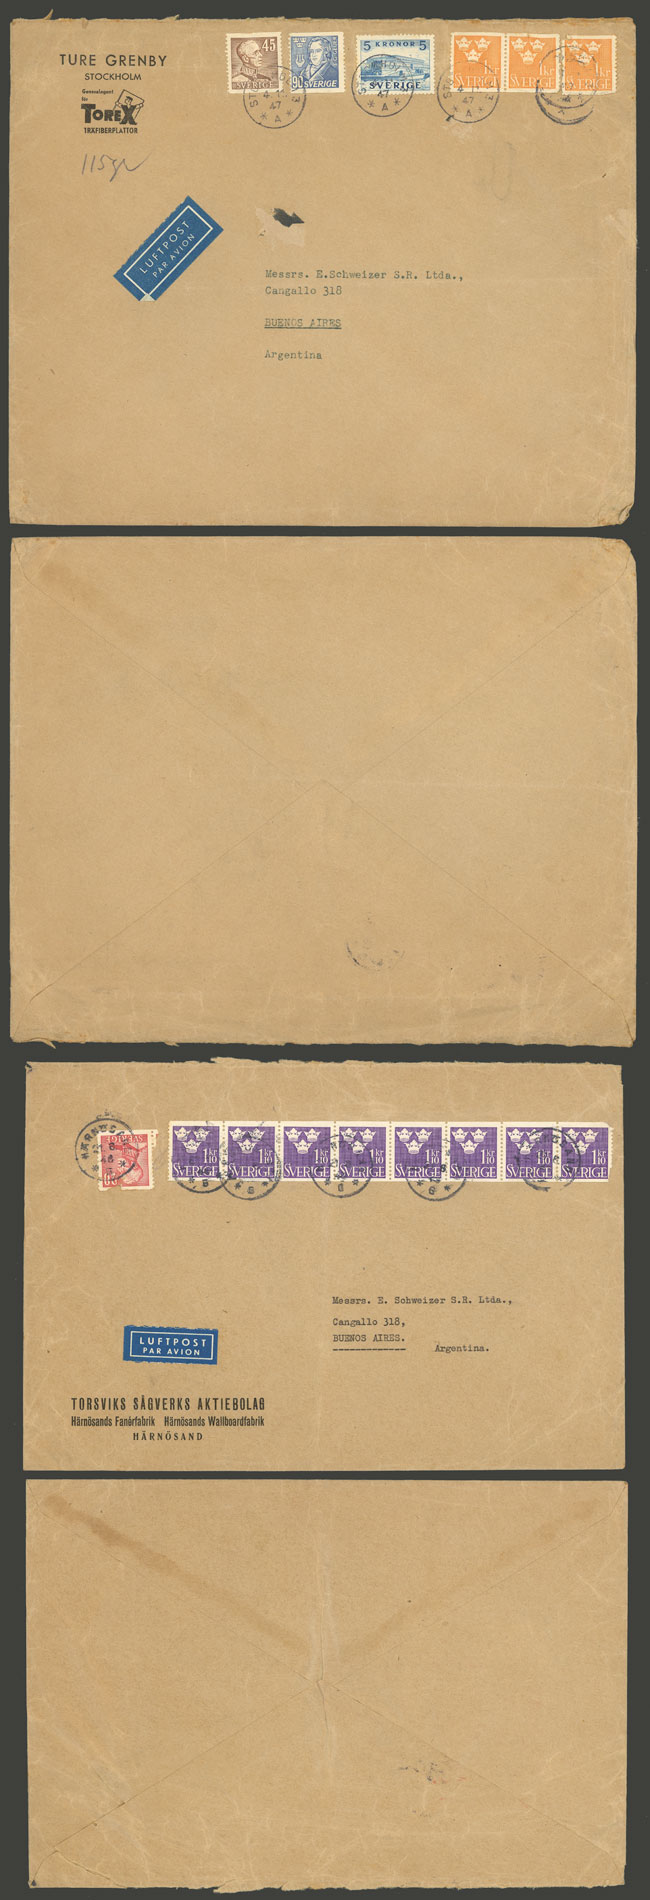 Lot 947 - Sweden postal history -  Guillermo Jalil - Philatino Auction # 2044 WORLDWIDE + ARGENTINA: General October auction